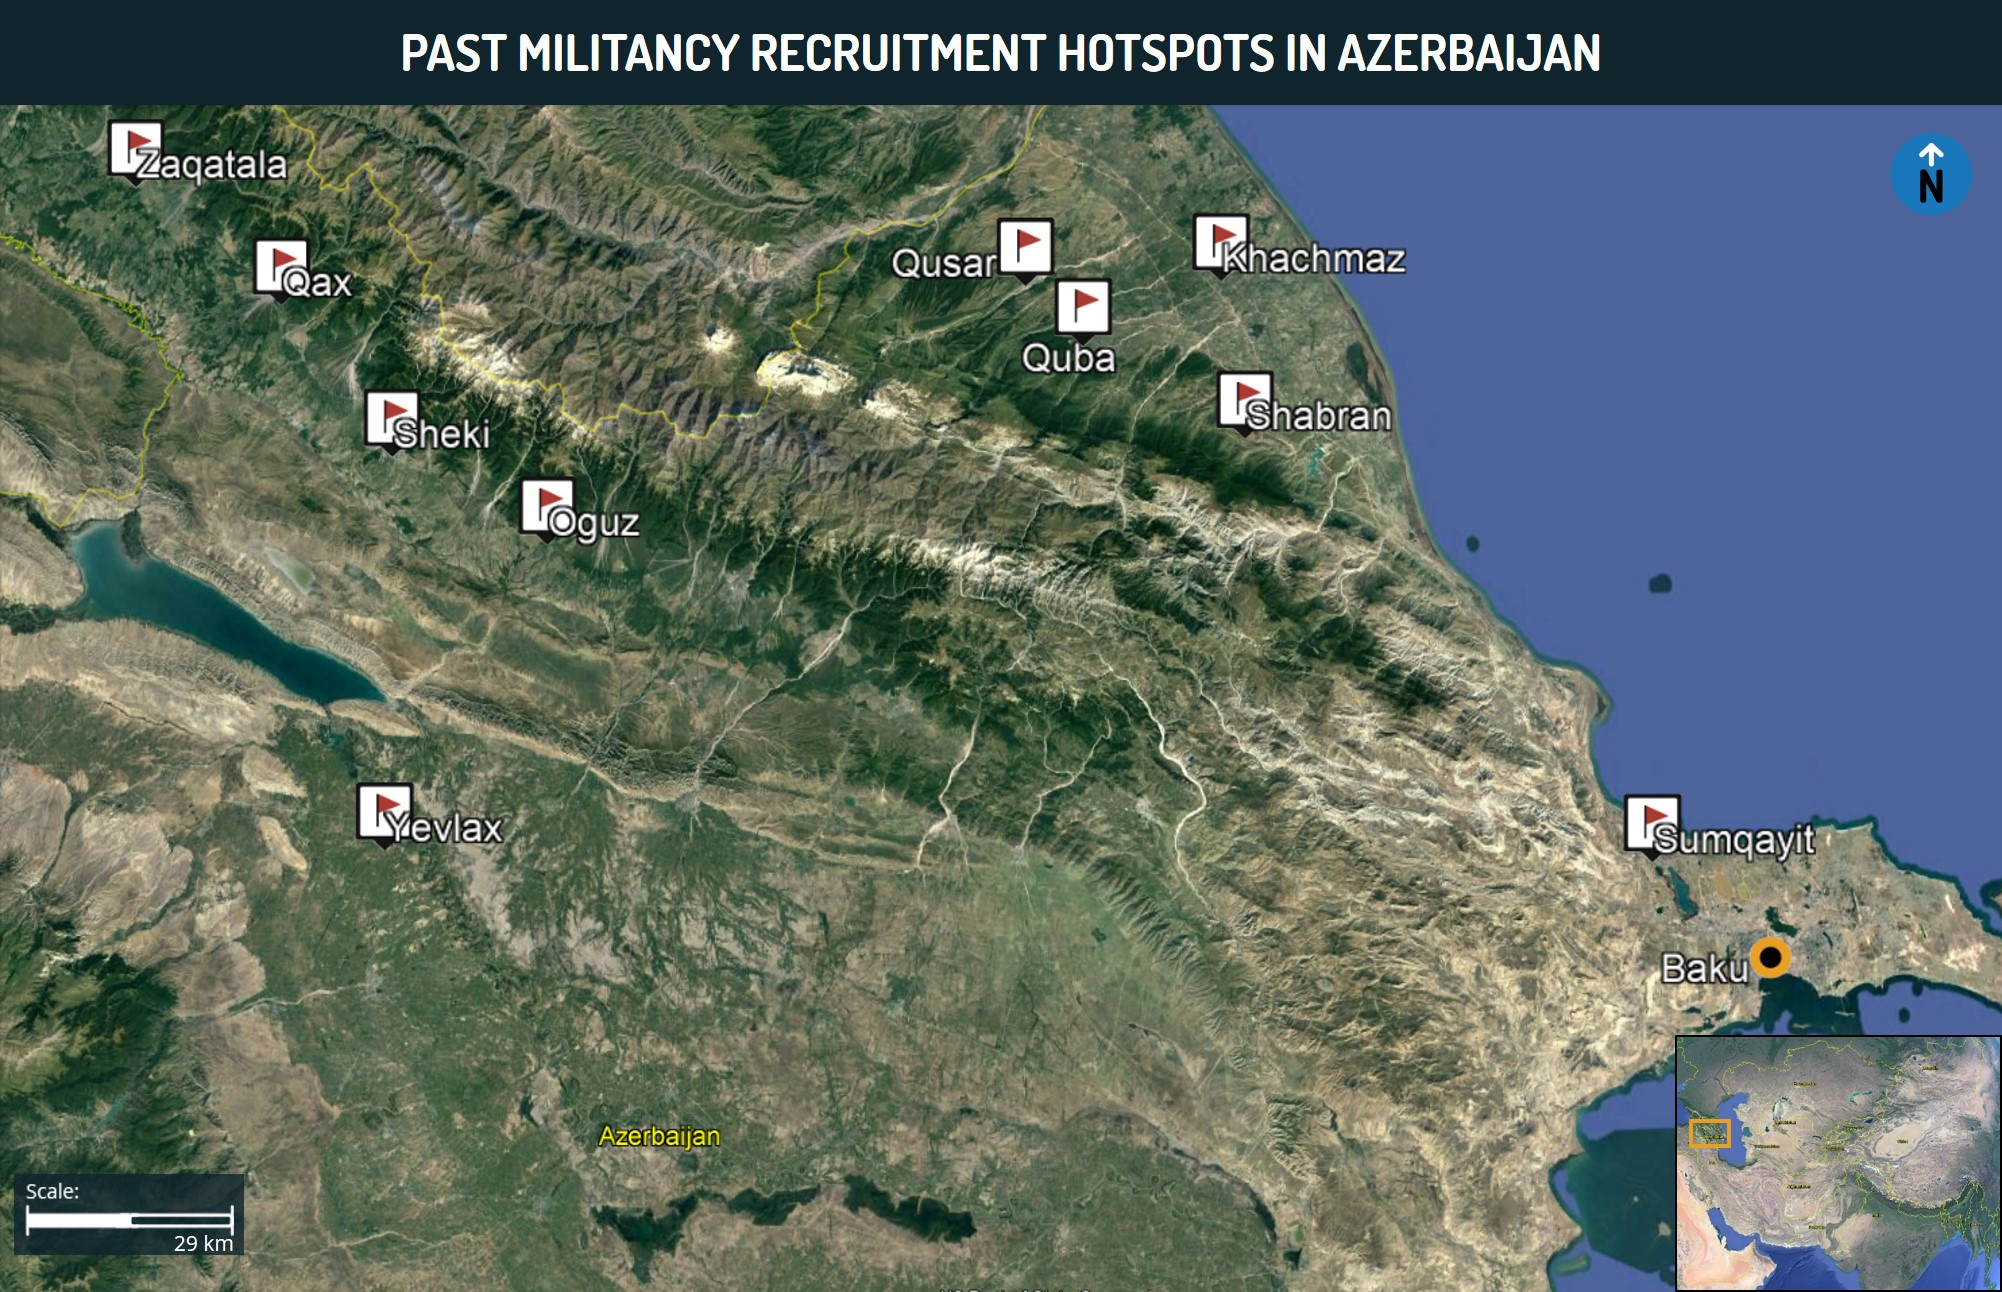 Past Militancy Recruitment Hotspots in Azerbaijan